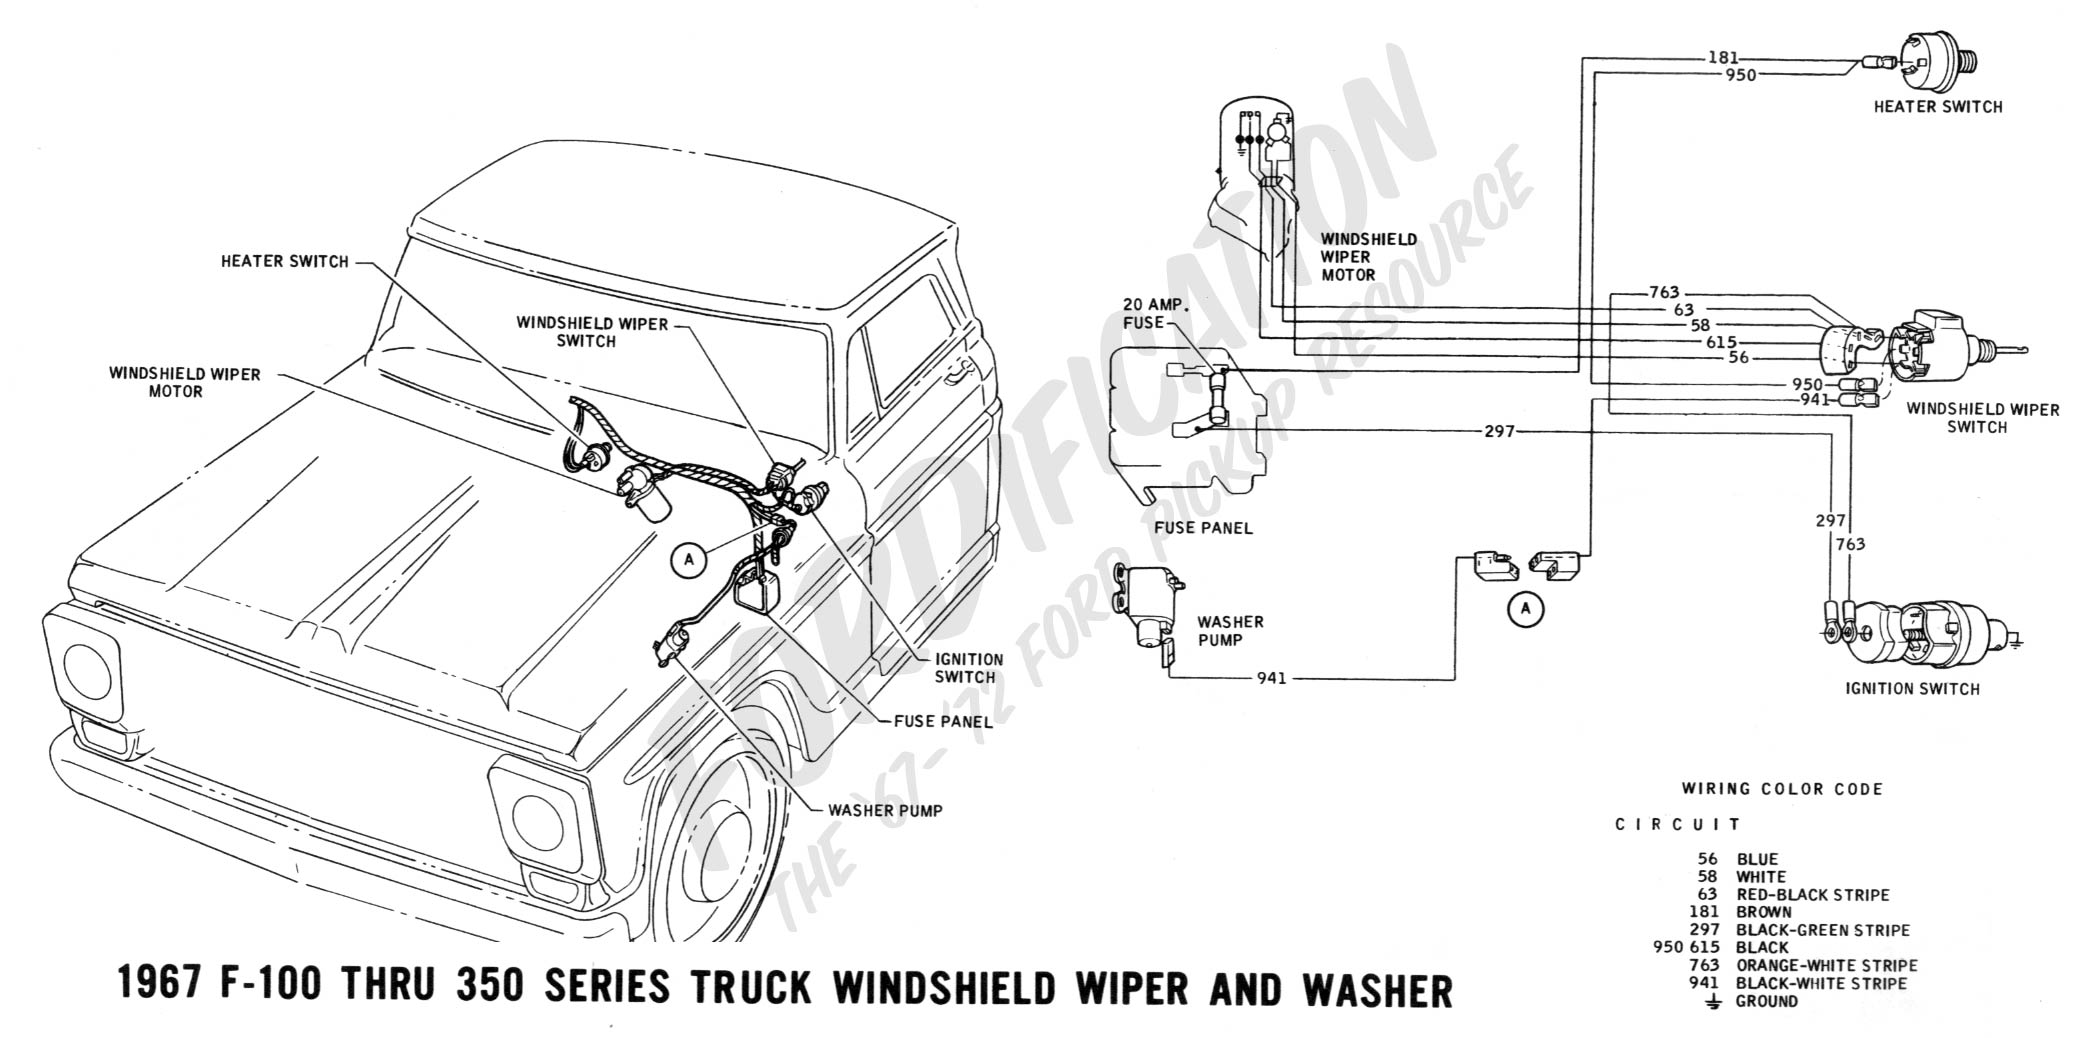 wiring 1967wipers 1966 f100 wiring diagram 1966 ford f100 dash wiring diagram \u2022 free universal wiper motor switch wiring diagram at virtualis.co